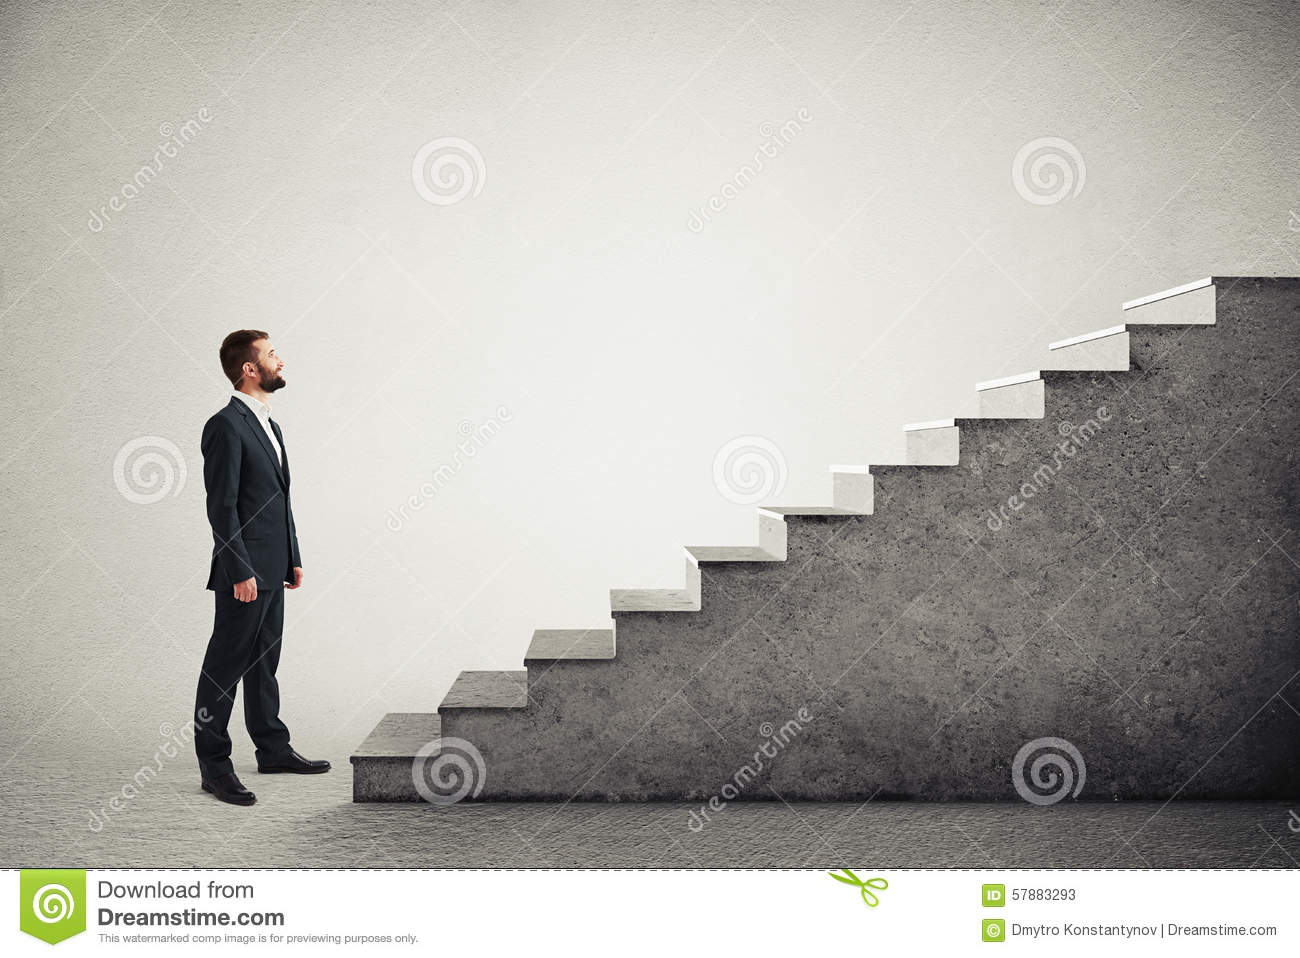 Man Standing Near Concrete Stairs Stock Photo - Image ...